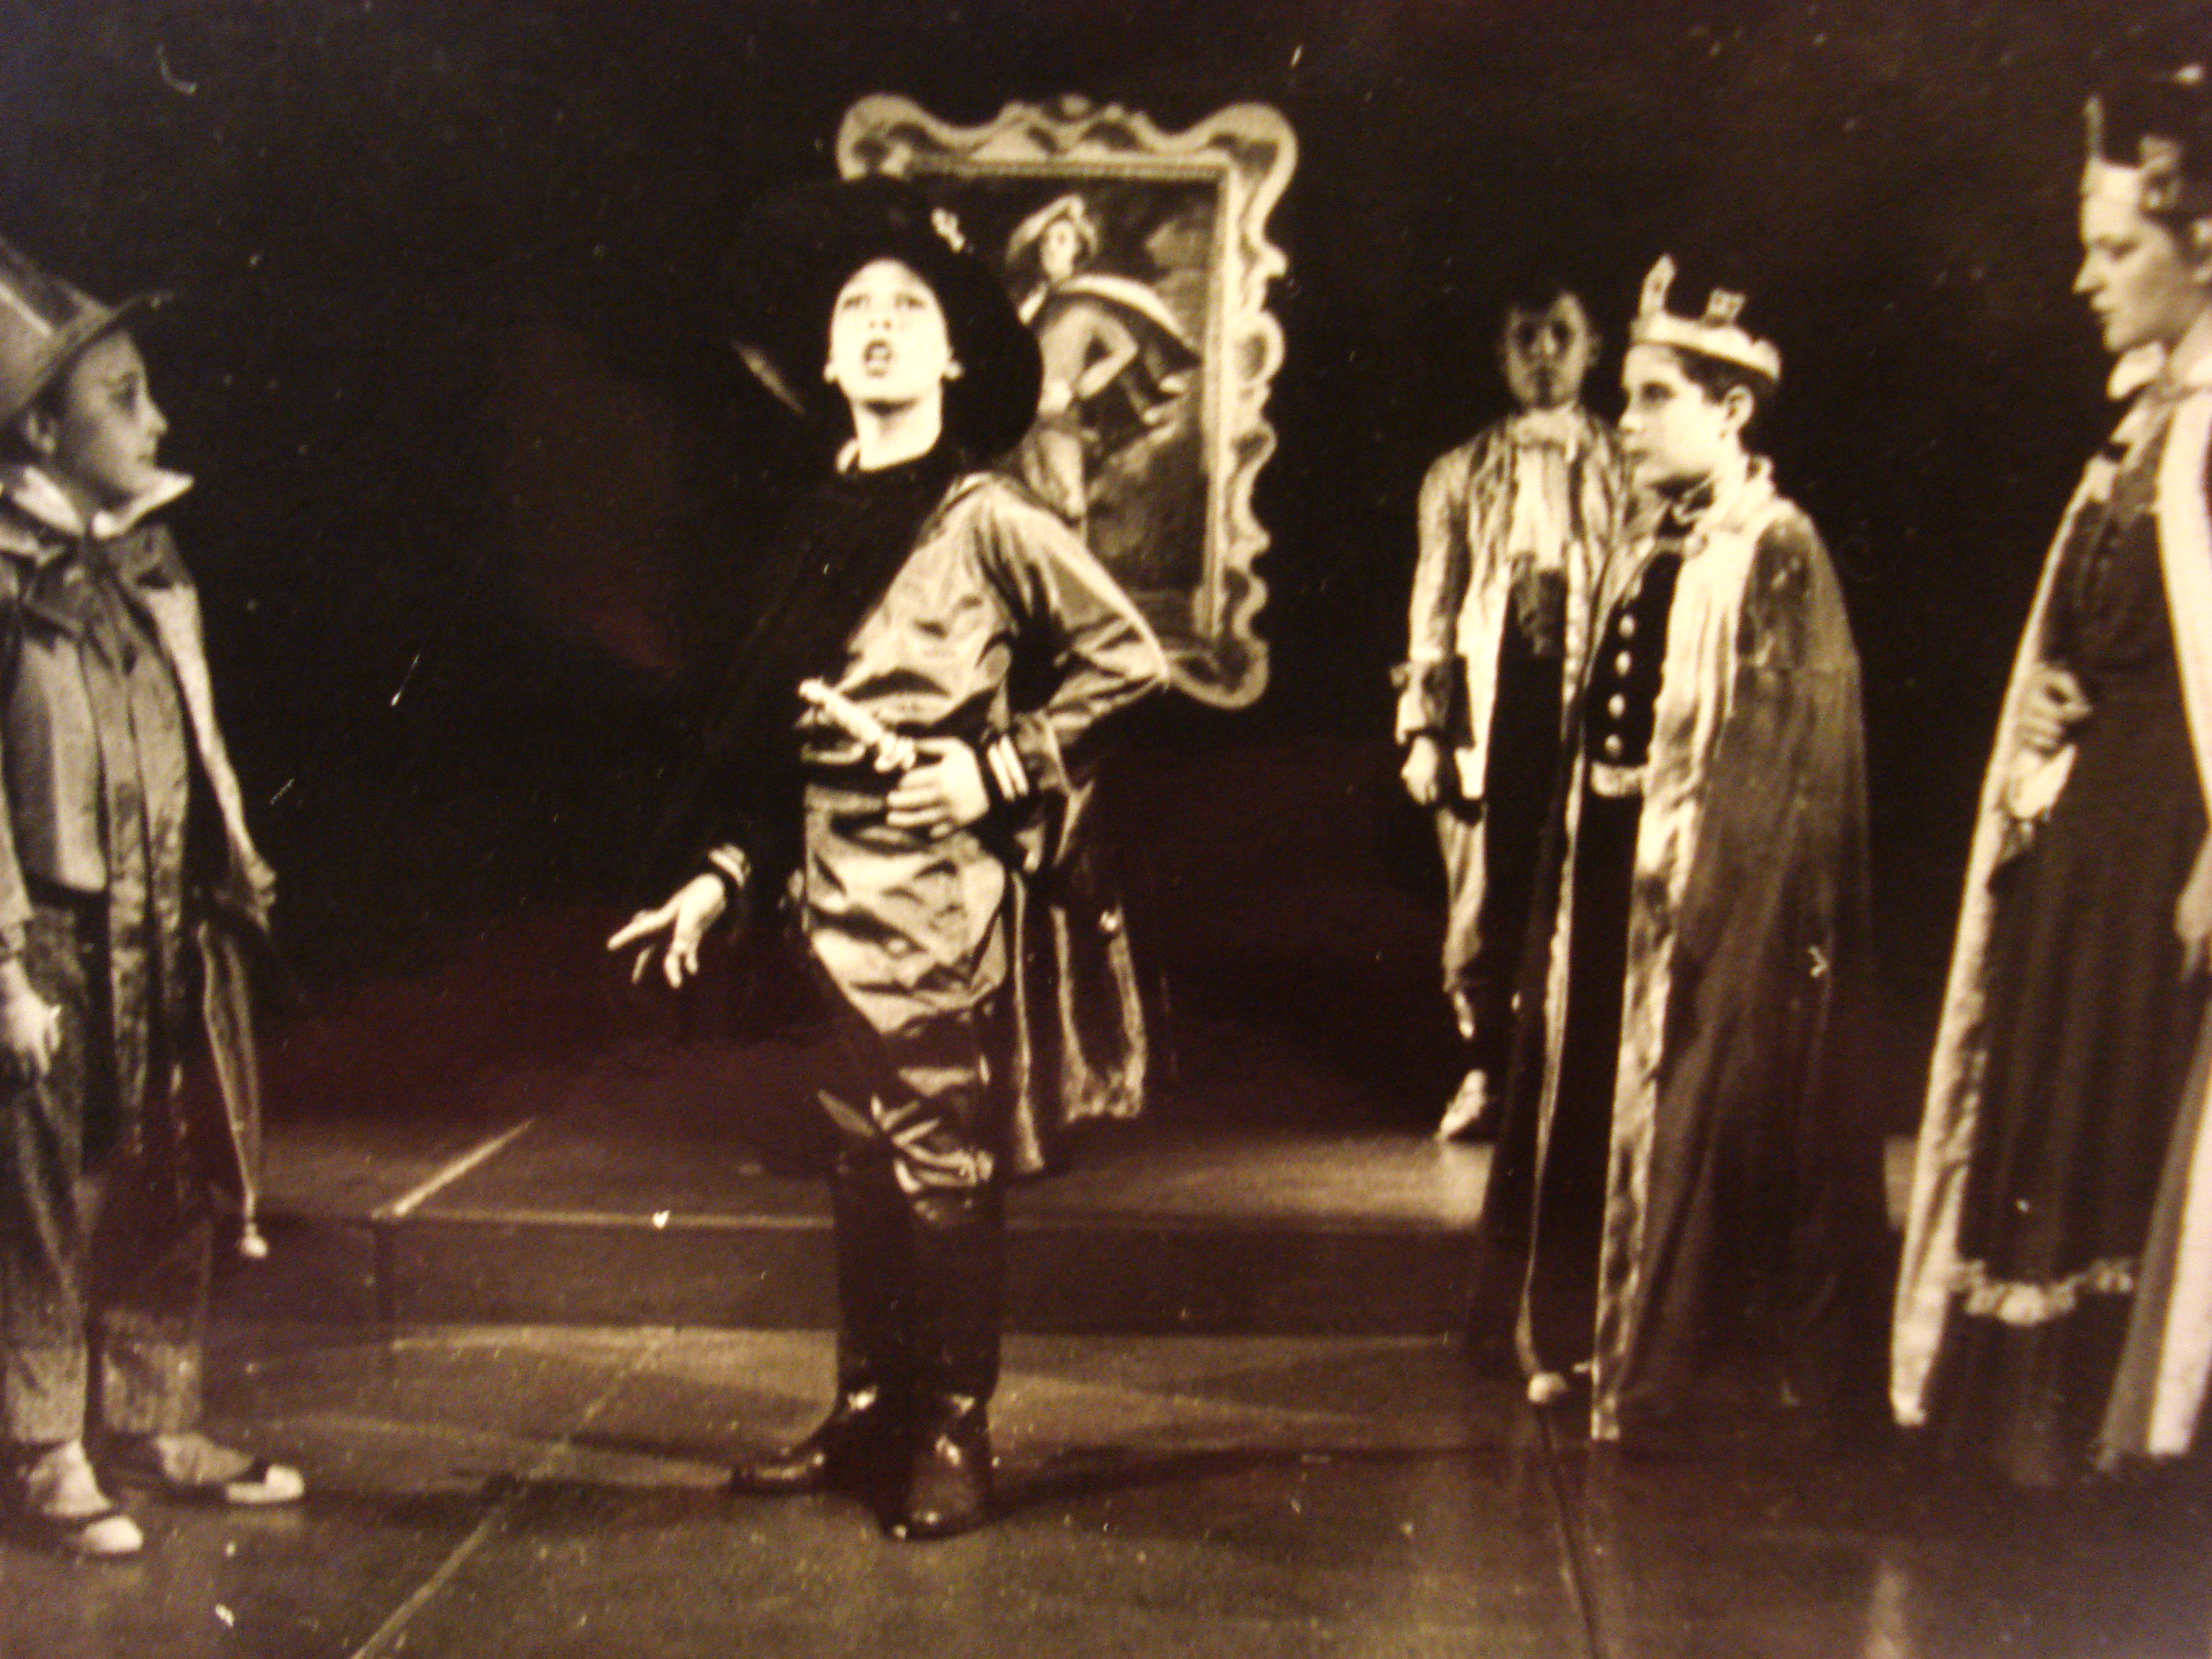 Eugene Pressman as The Blue Prince